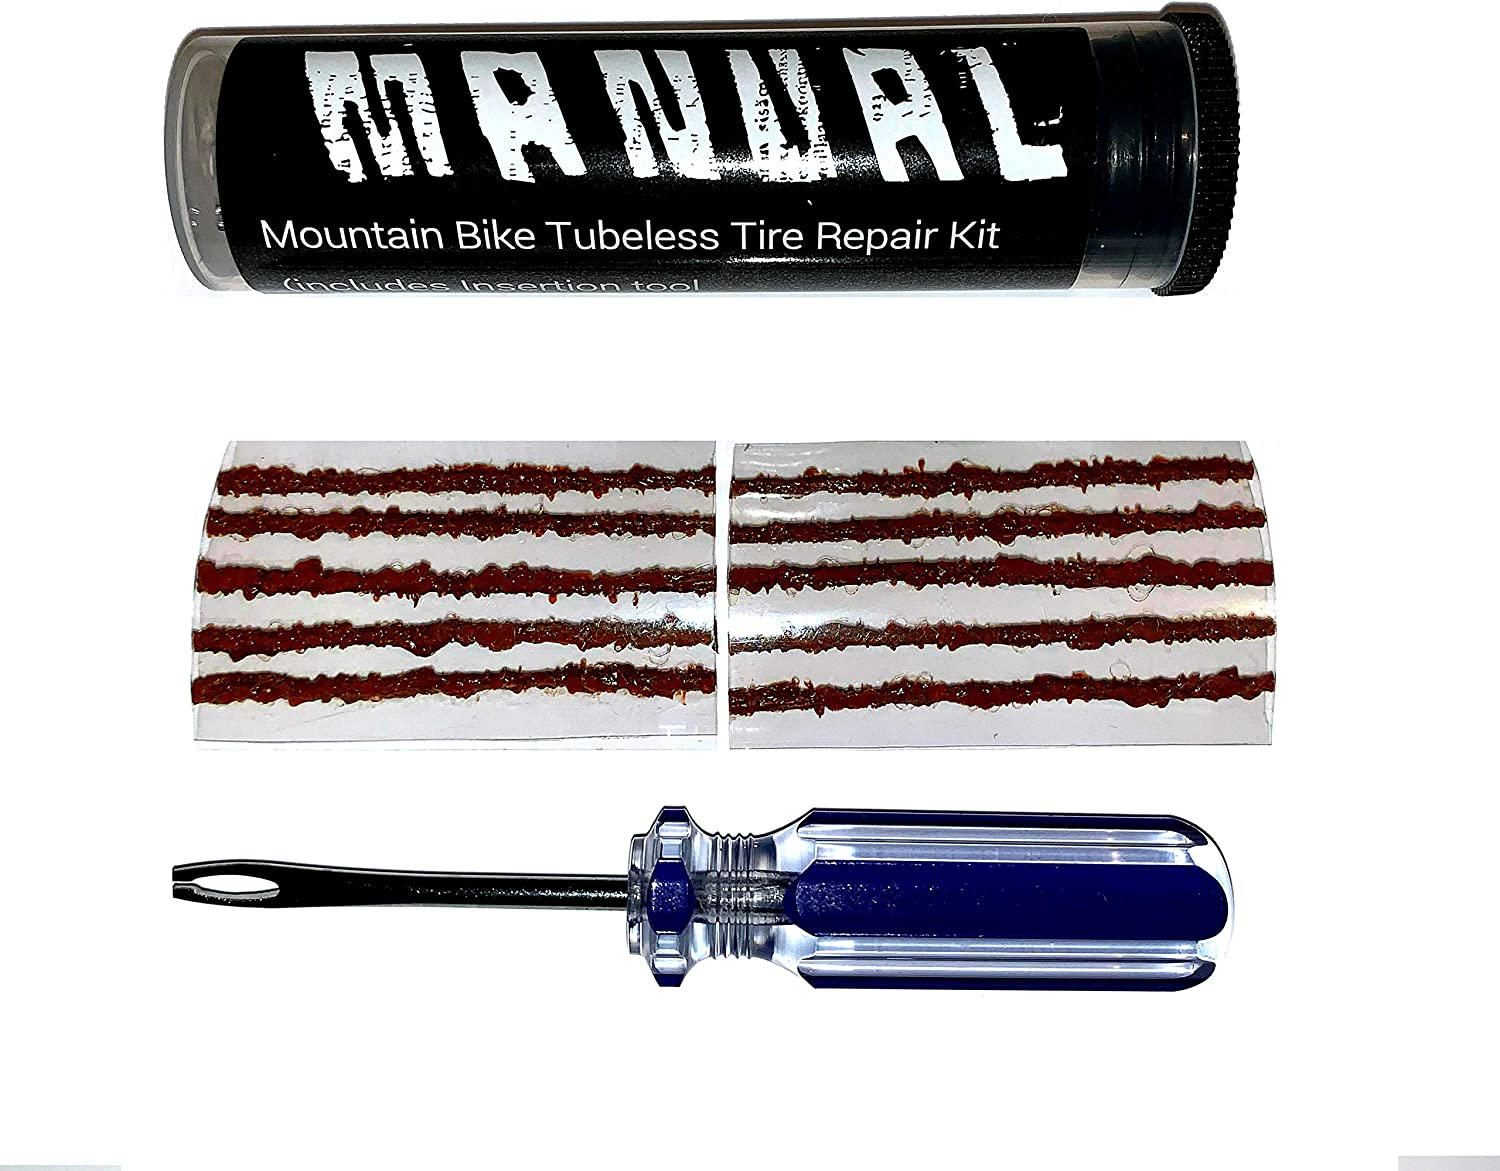 Manual Tubeless Tire Repair Kit MTB Bacon Strips Plus Insertion Tool